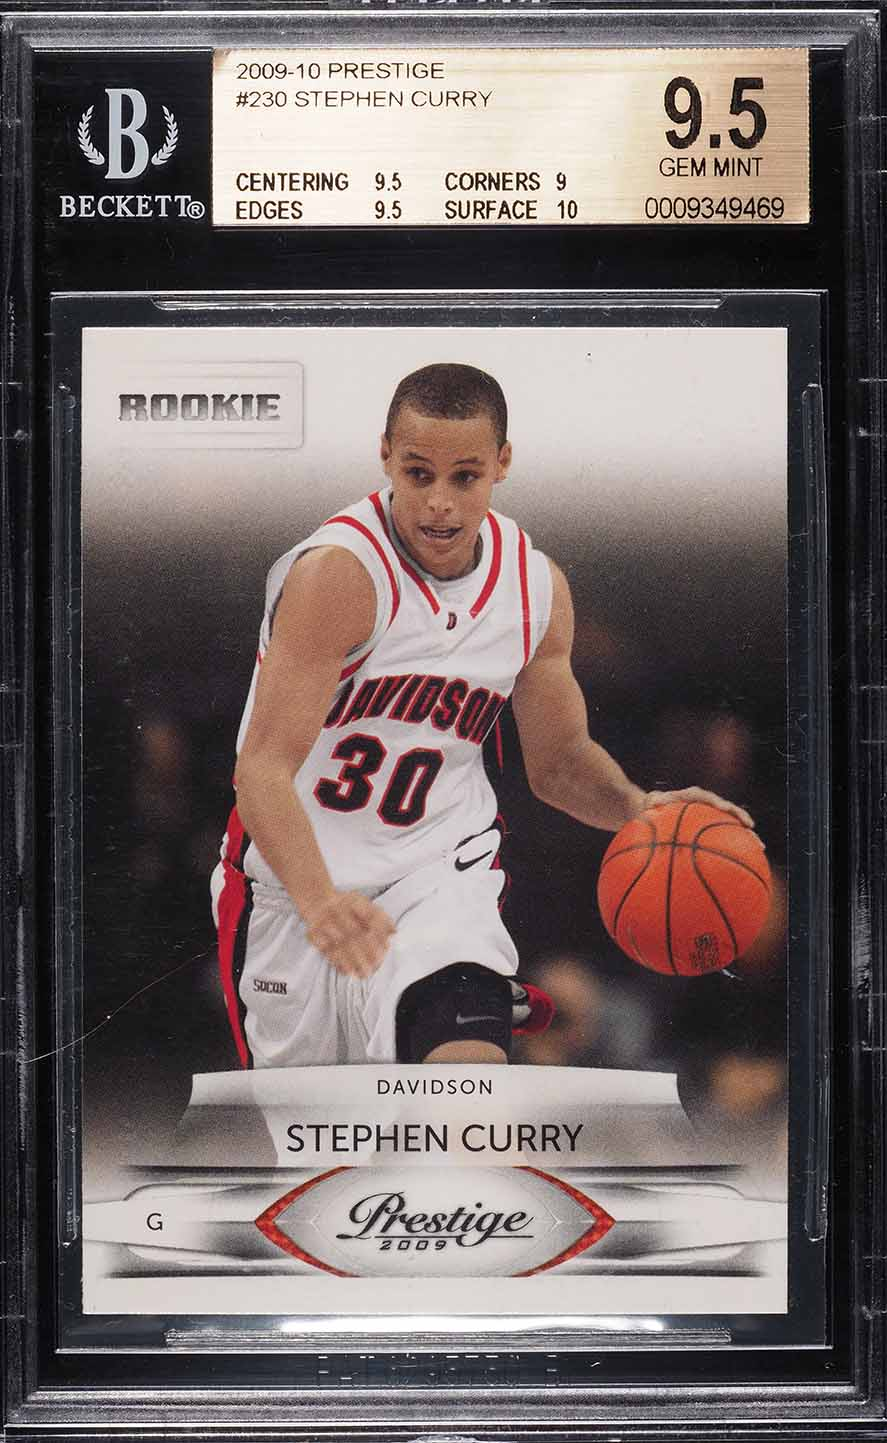 2009 Panini Prestige Stephen Curry Rookie Rc 230 Bgs 95